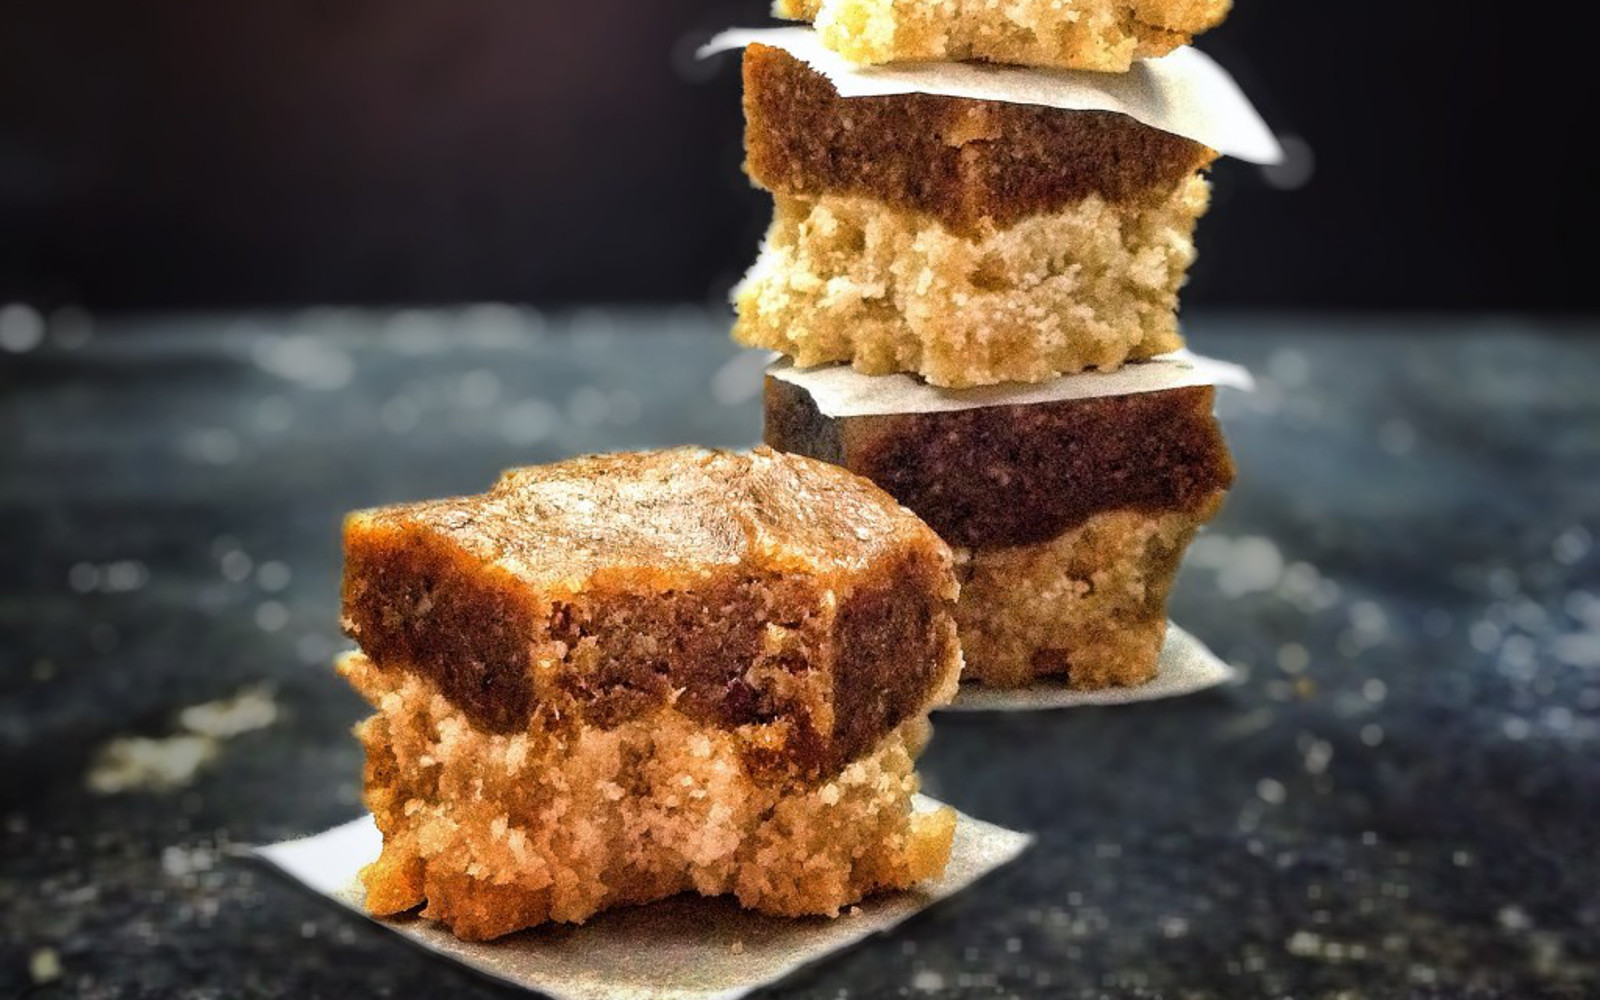 Spicy Ginger Square With a Sticky, Spicy Date Topping